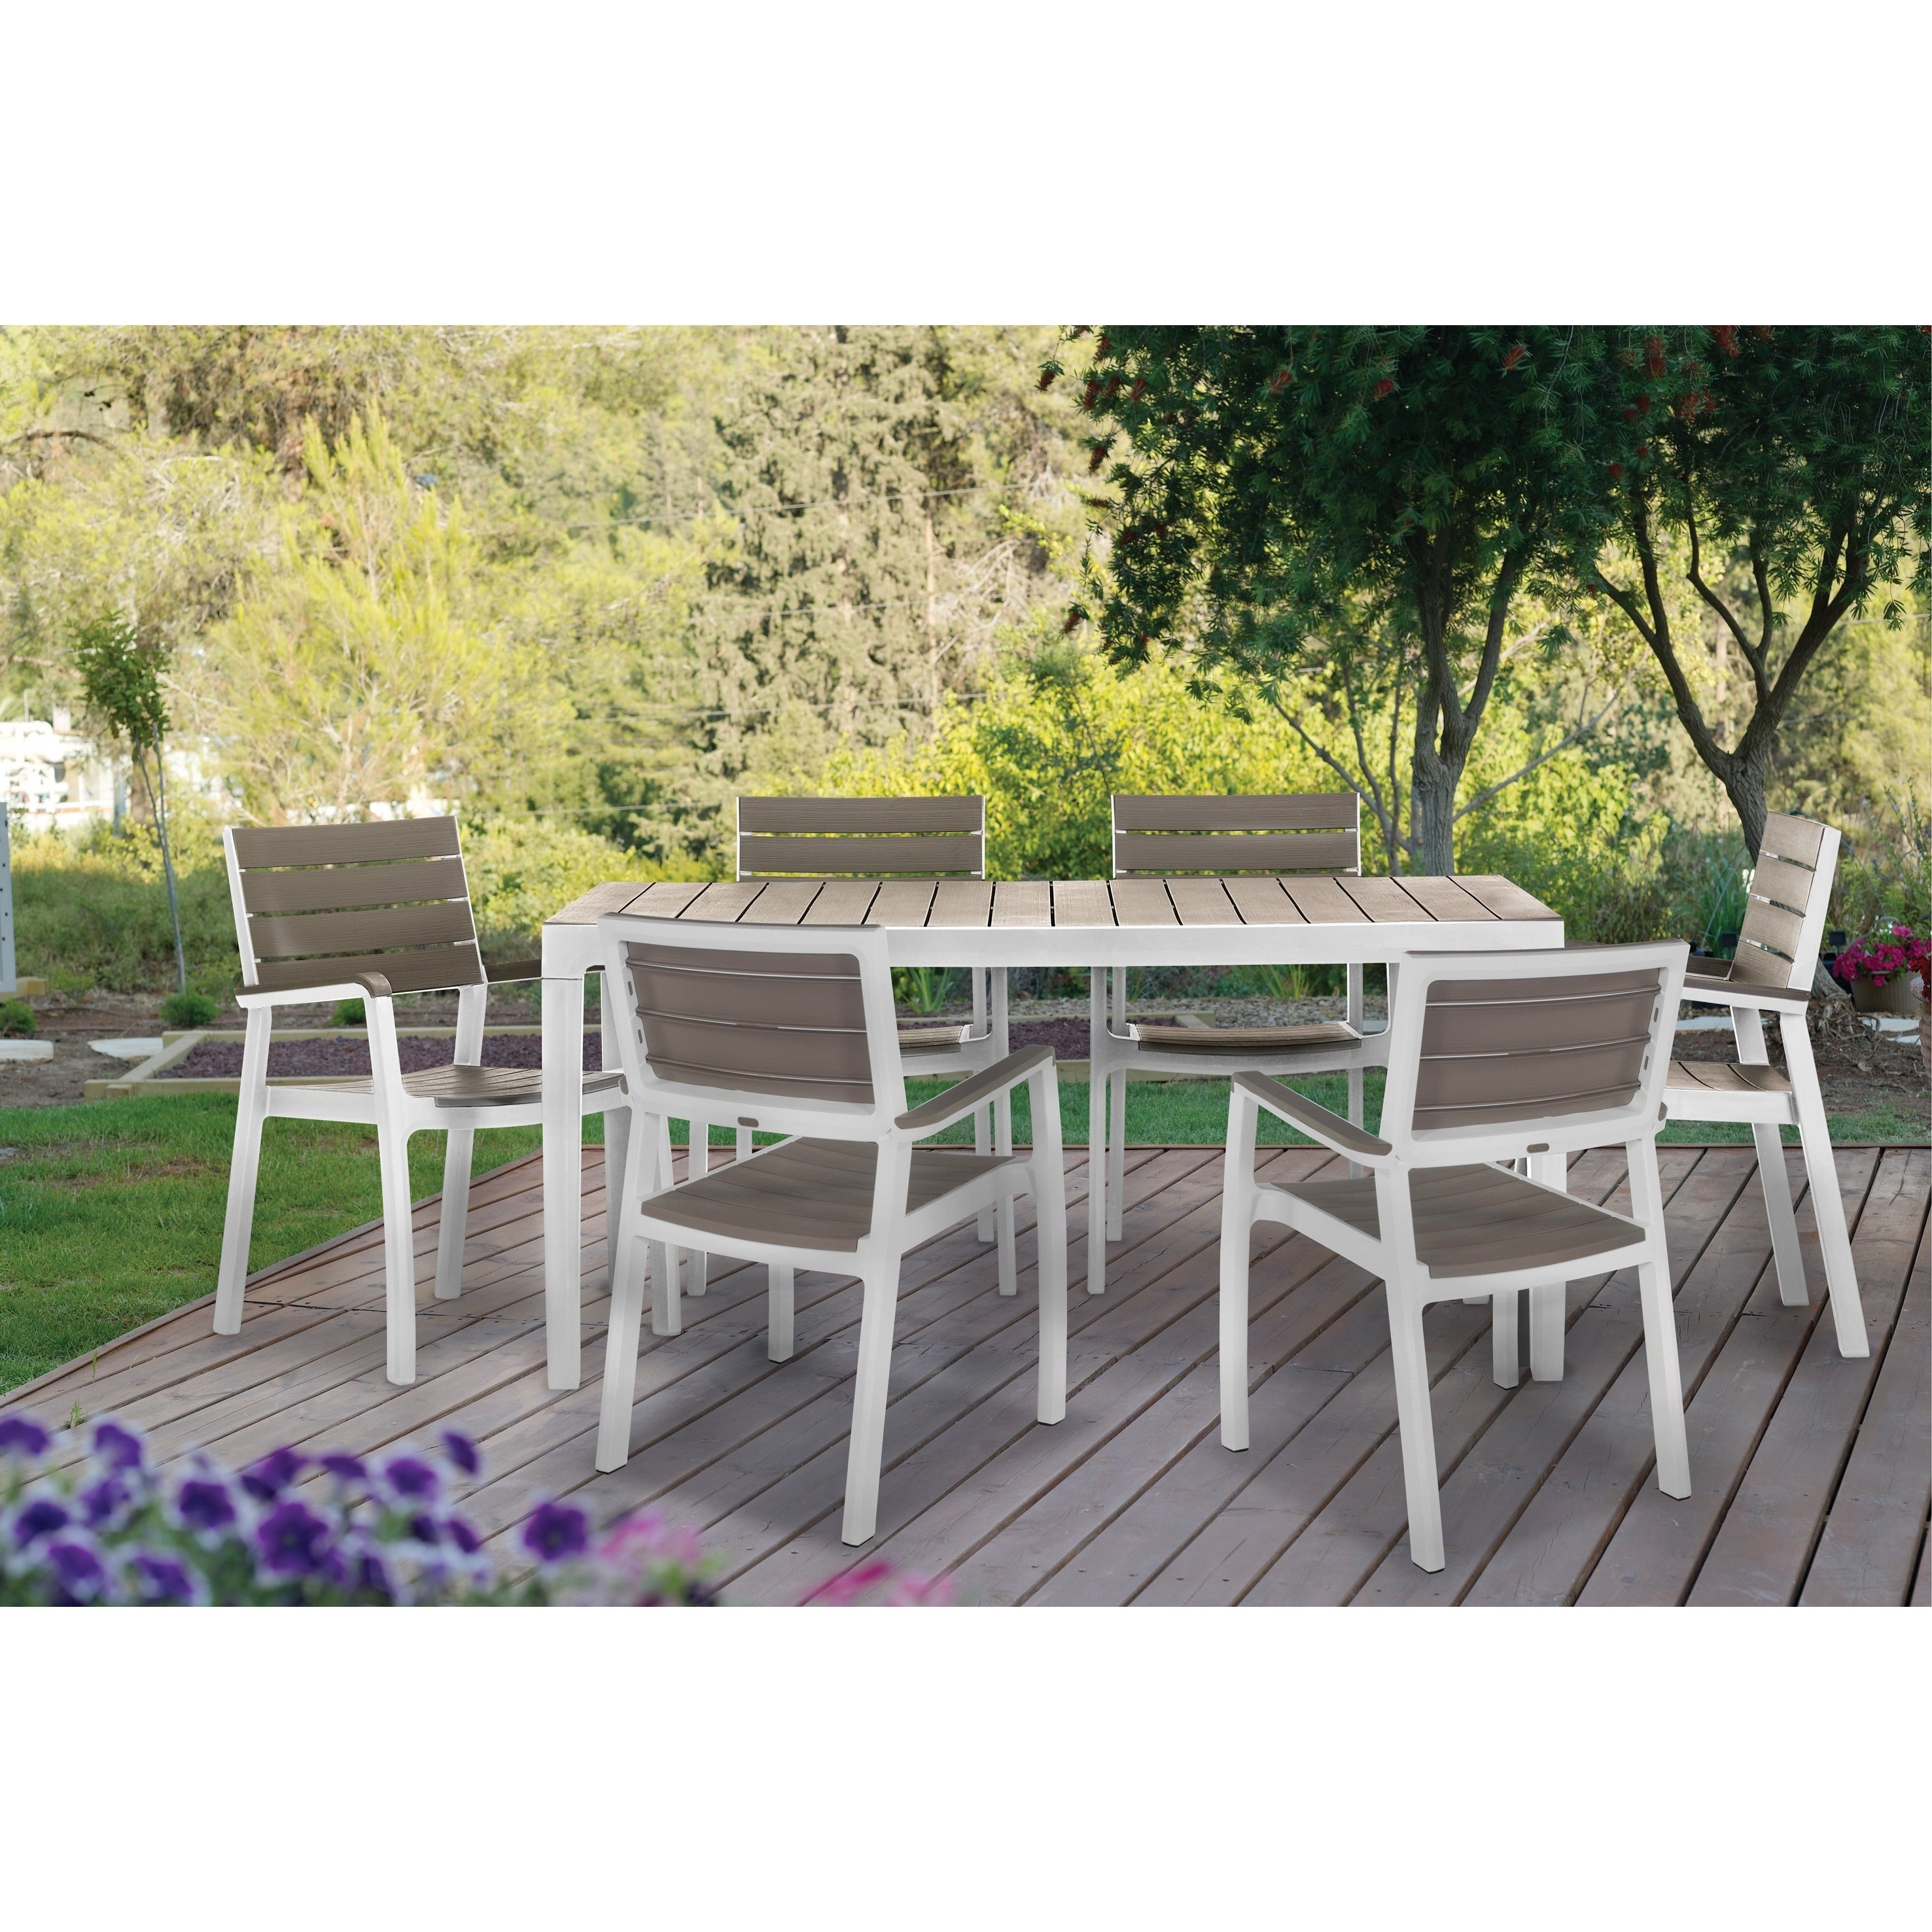 Keter Harmony Outdoor Dining Table